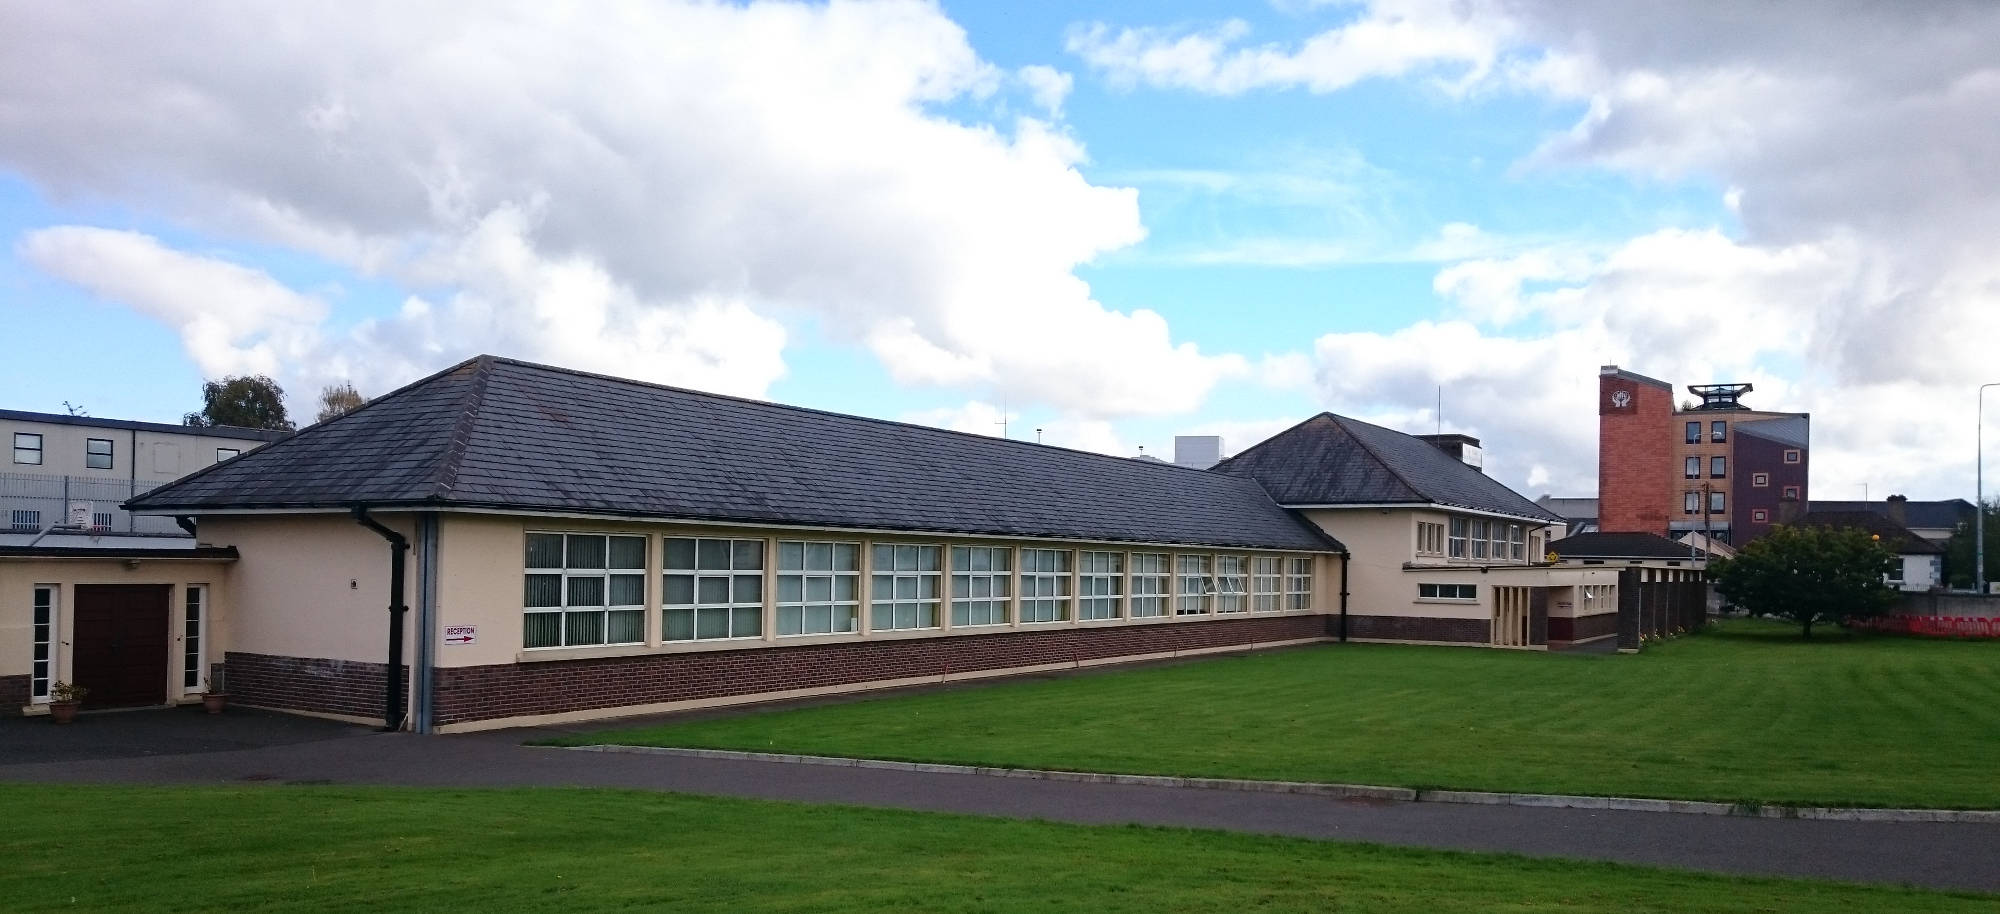 The Senior School building at Scoil Mhuire Primary School, Navan, Co. Meath.